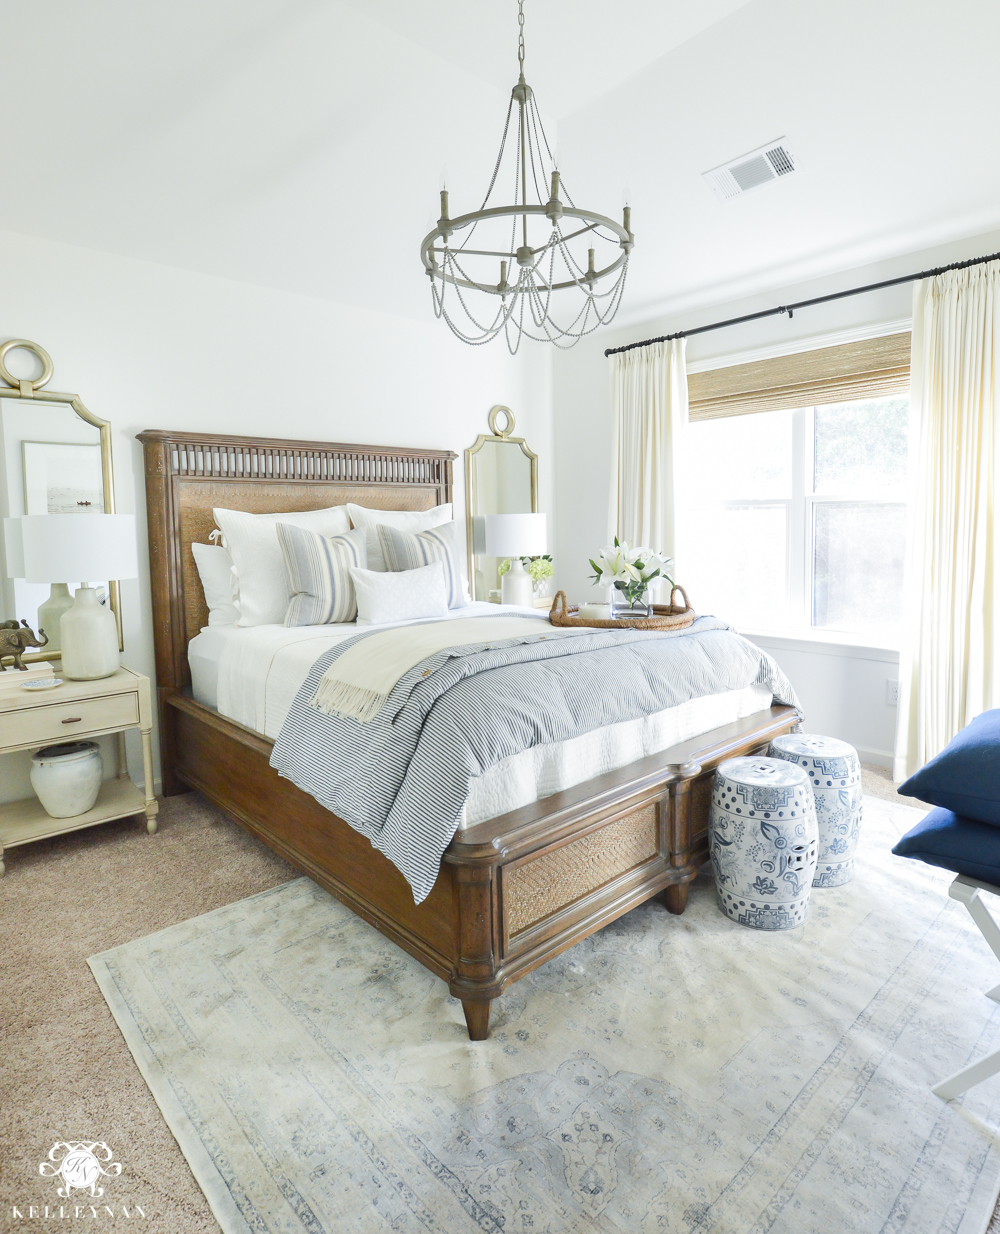 One Room Challenge Blue and White Guest Bedroom Reveal Before and After Makeover- guest bedroom inspiration